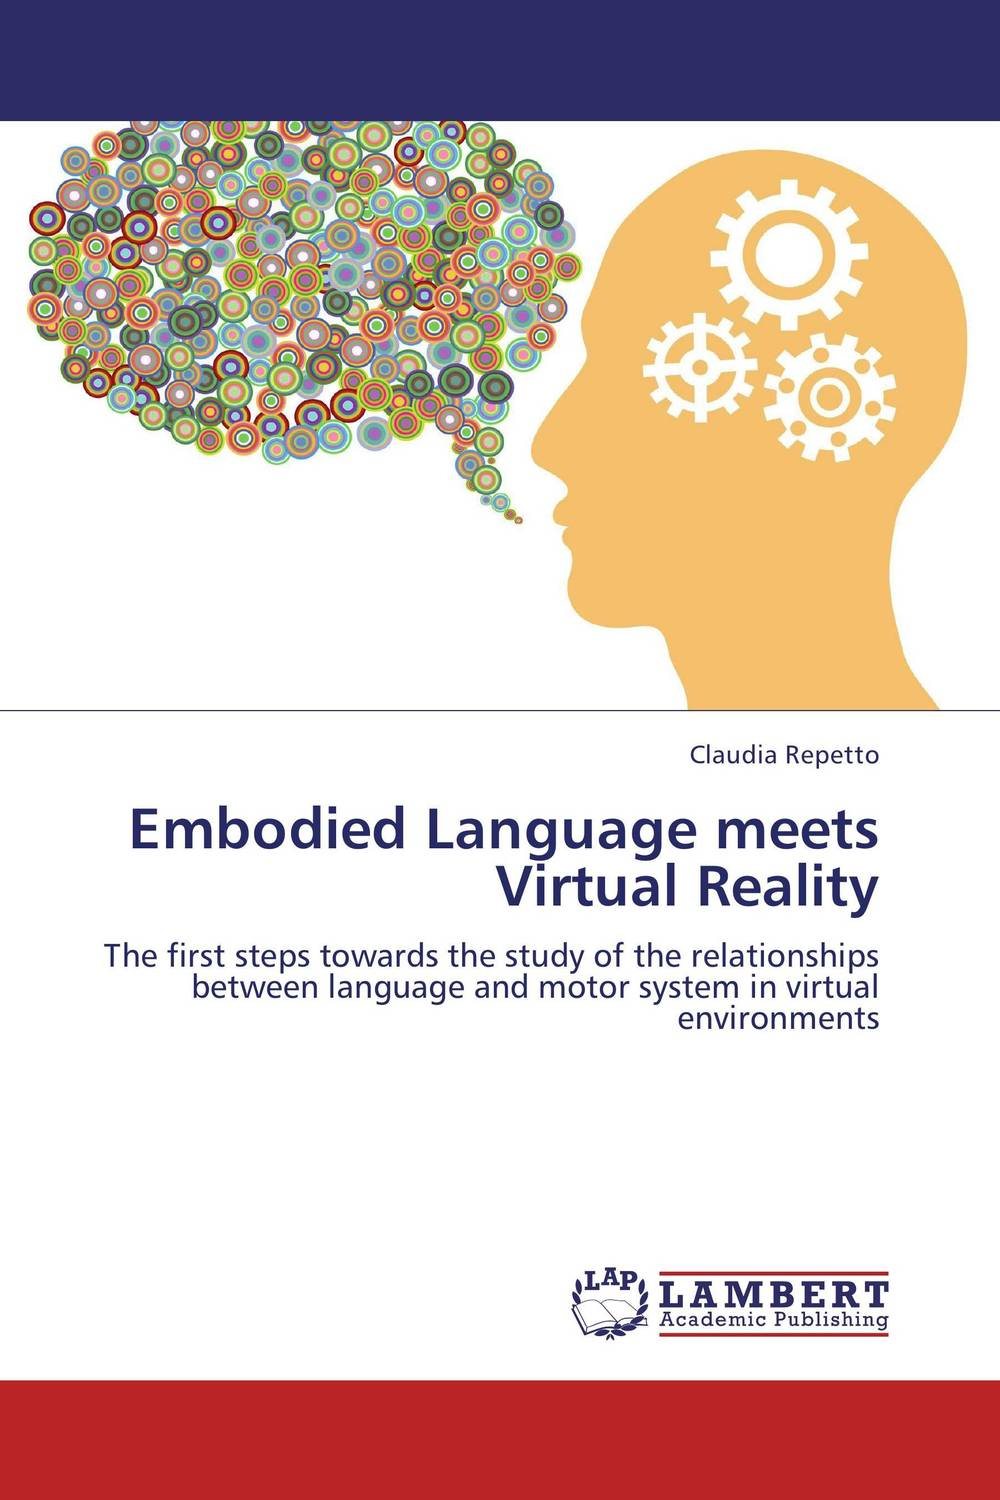 Embodied Language meets Virtual Reality firas abdullah thweny al saedi and fadi khalid ibrahim al khalidi design of a three dimensional virtual reality environment